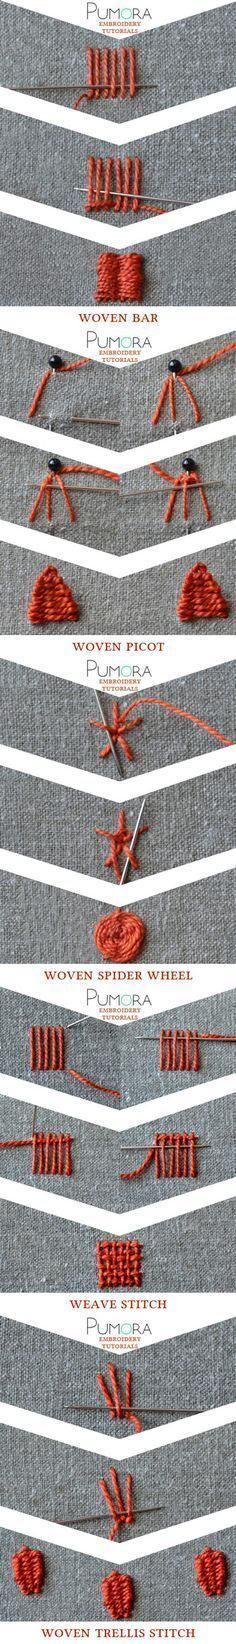 Pumra's embroidery stitch lexicon: weave stitch and variations Más